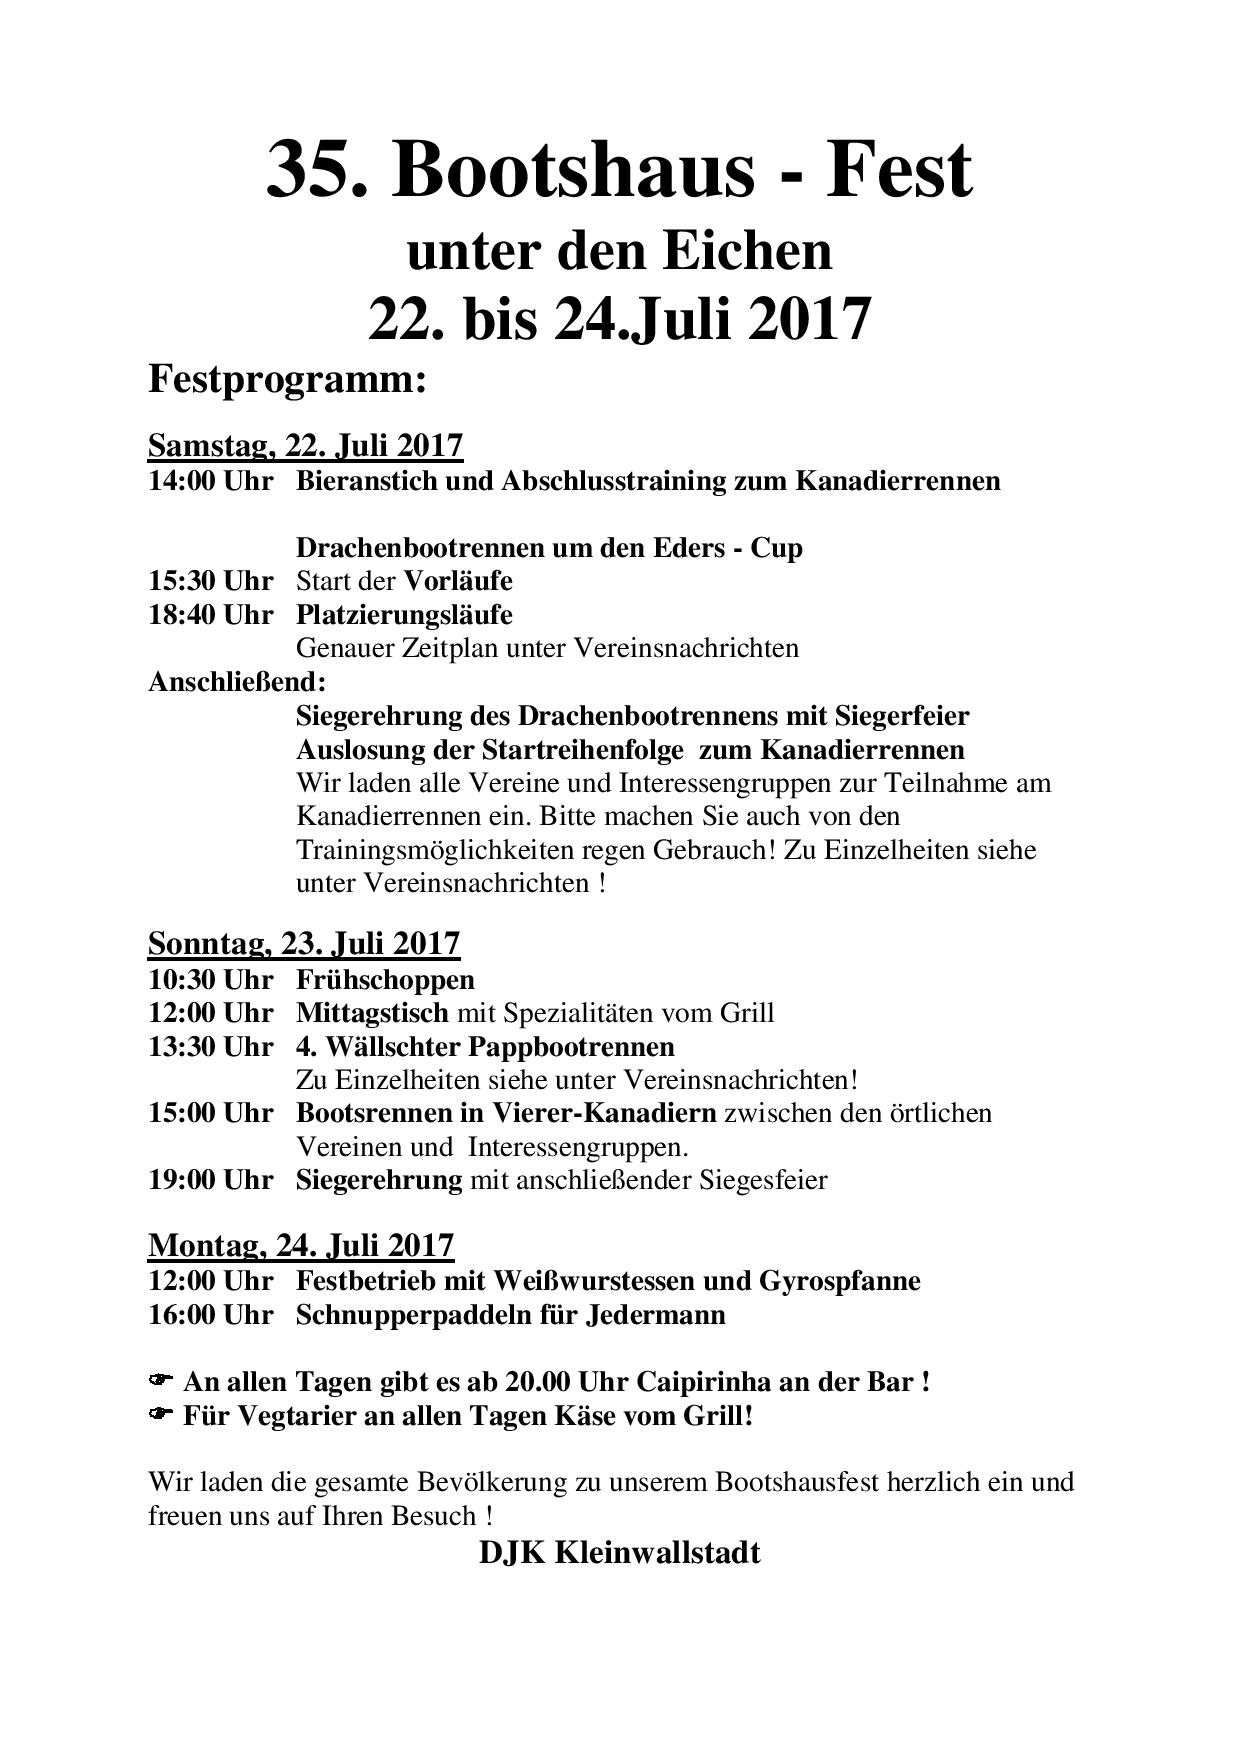 Bootshausfest 2017